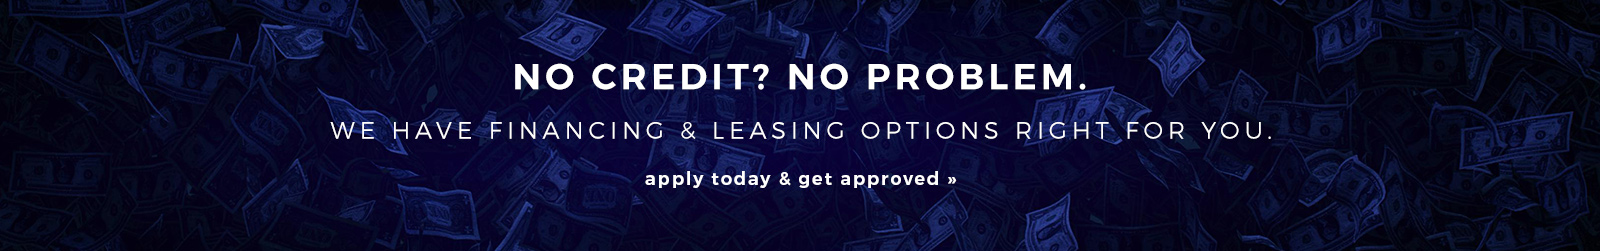 Finance & Leasing Options